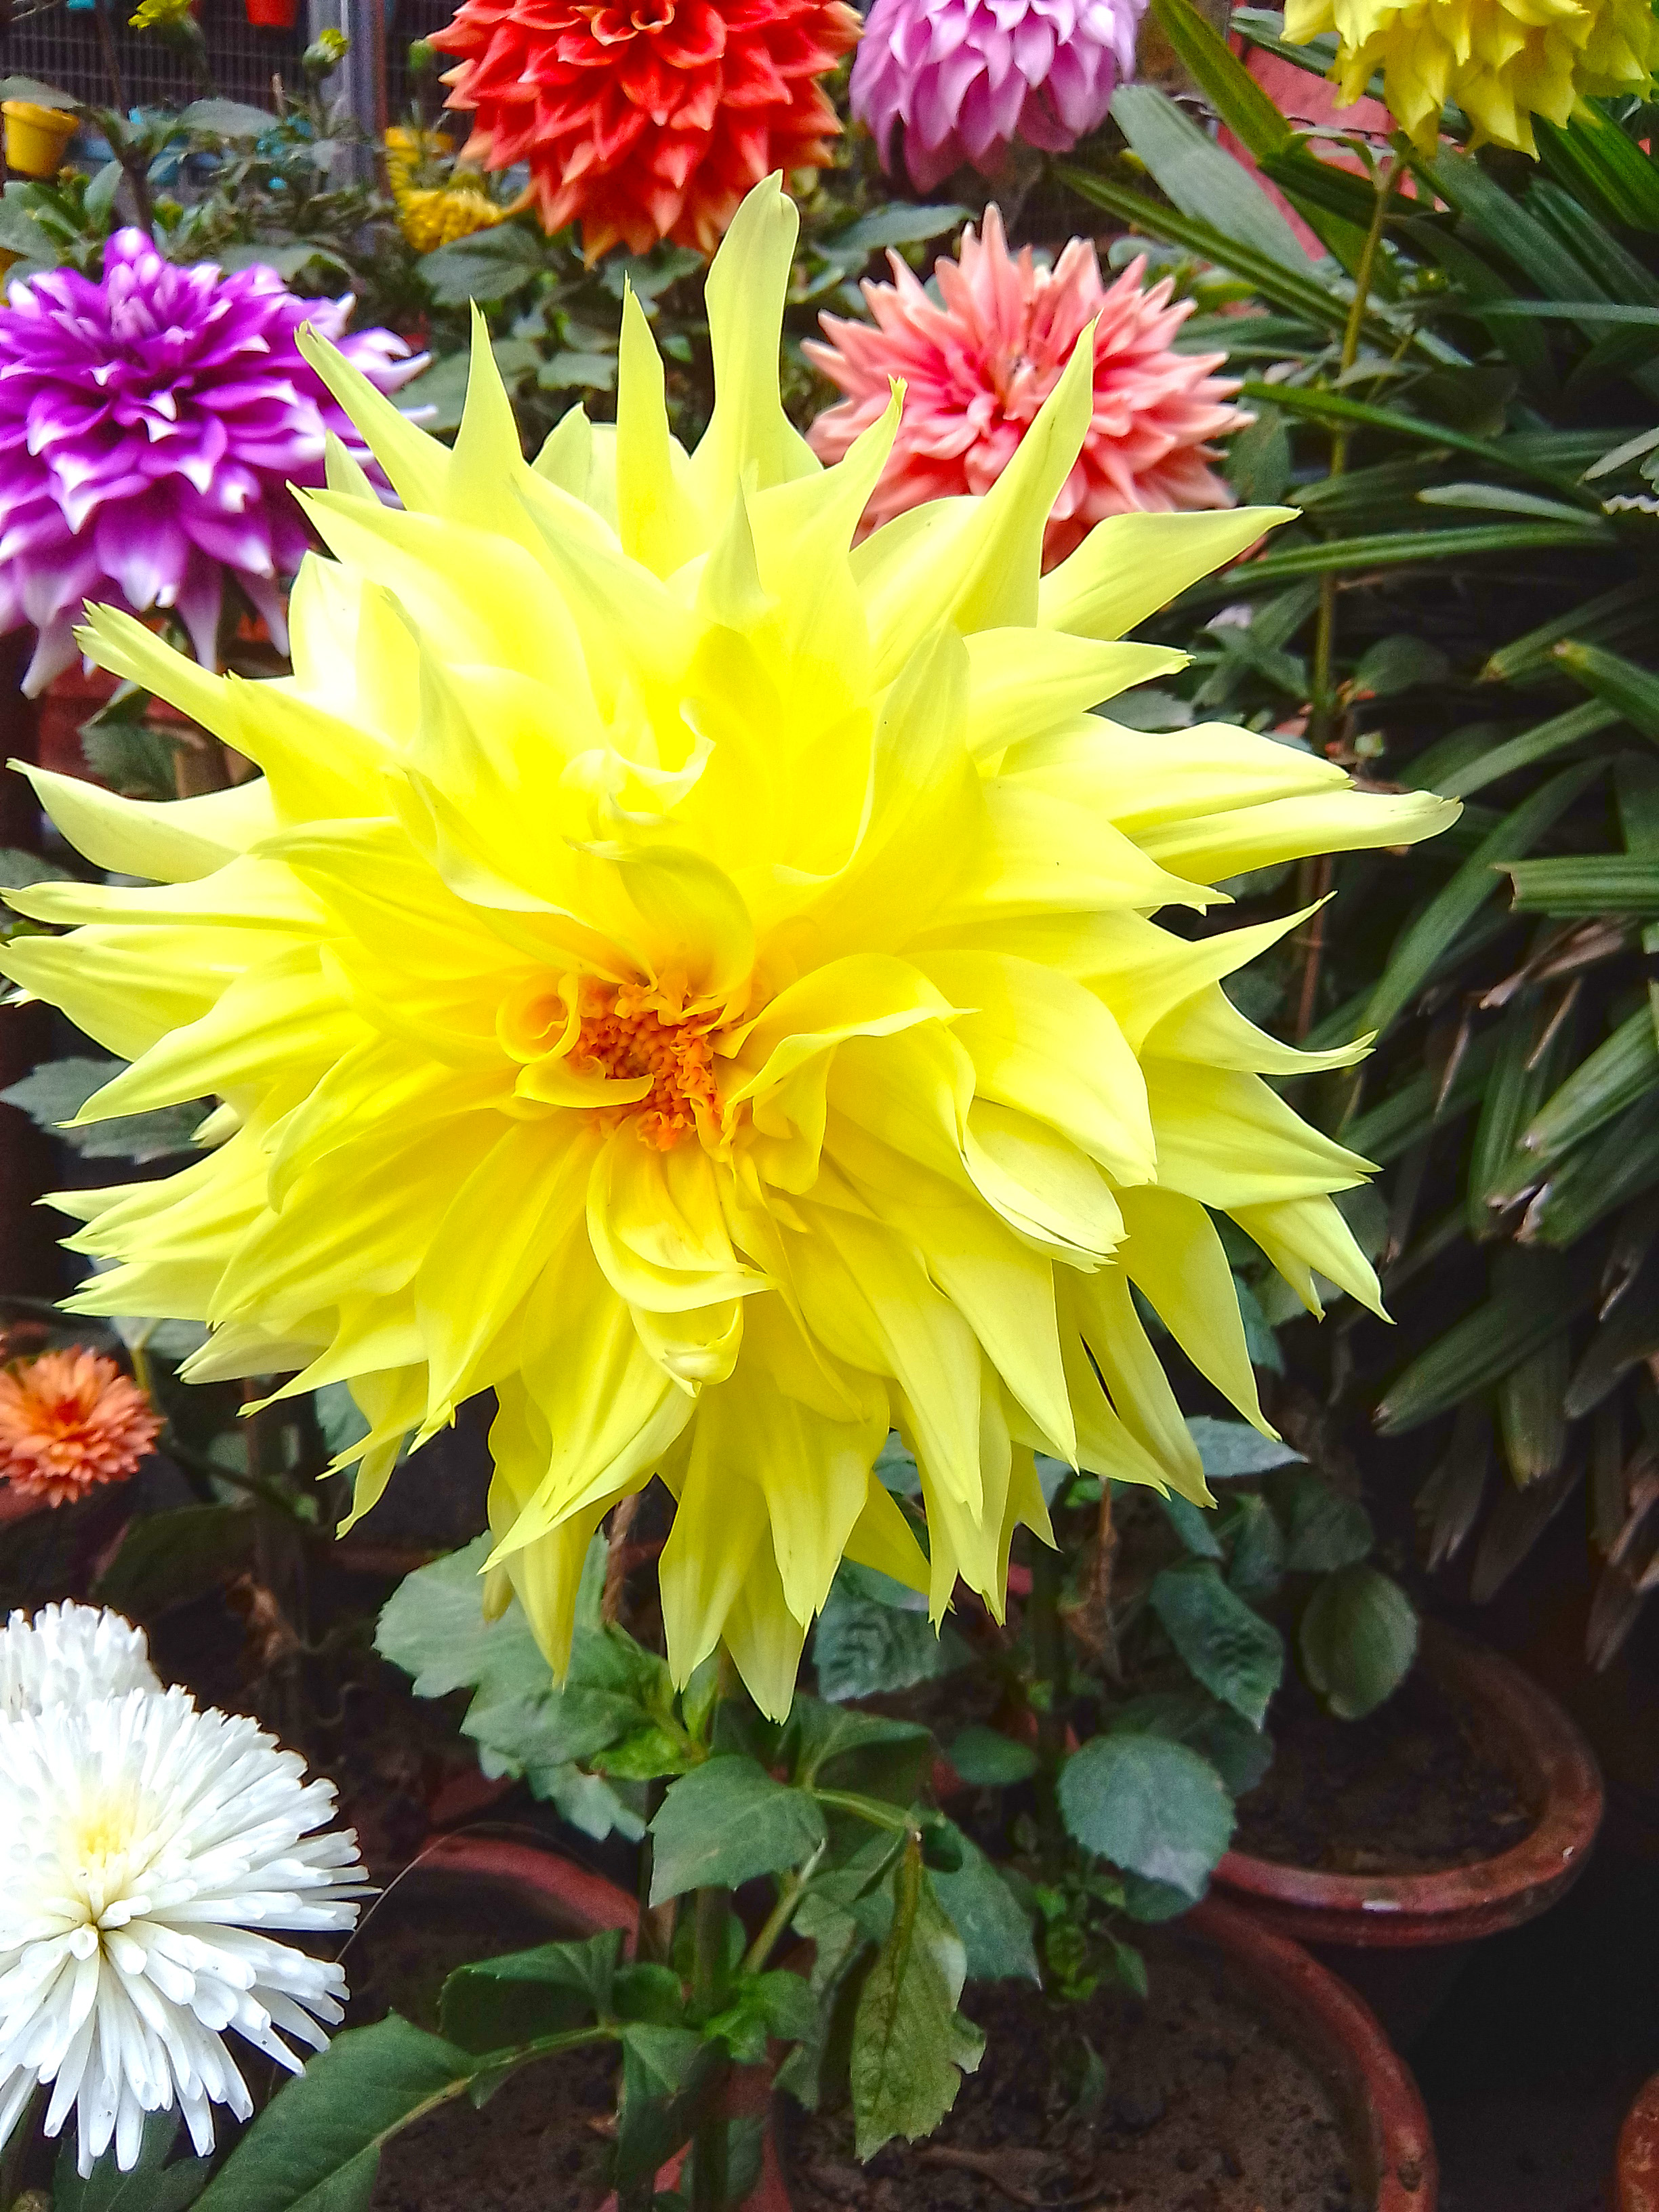 Dahlia flowers information we are giving you.